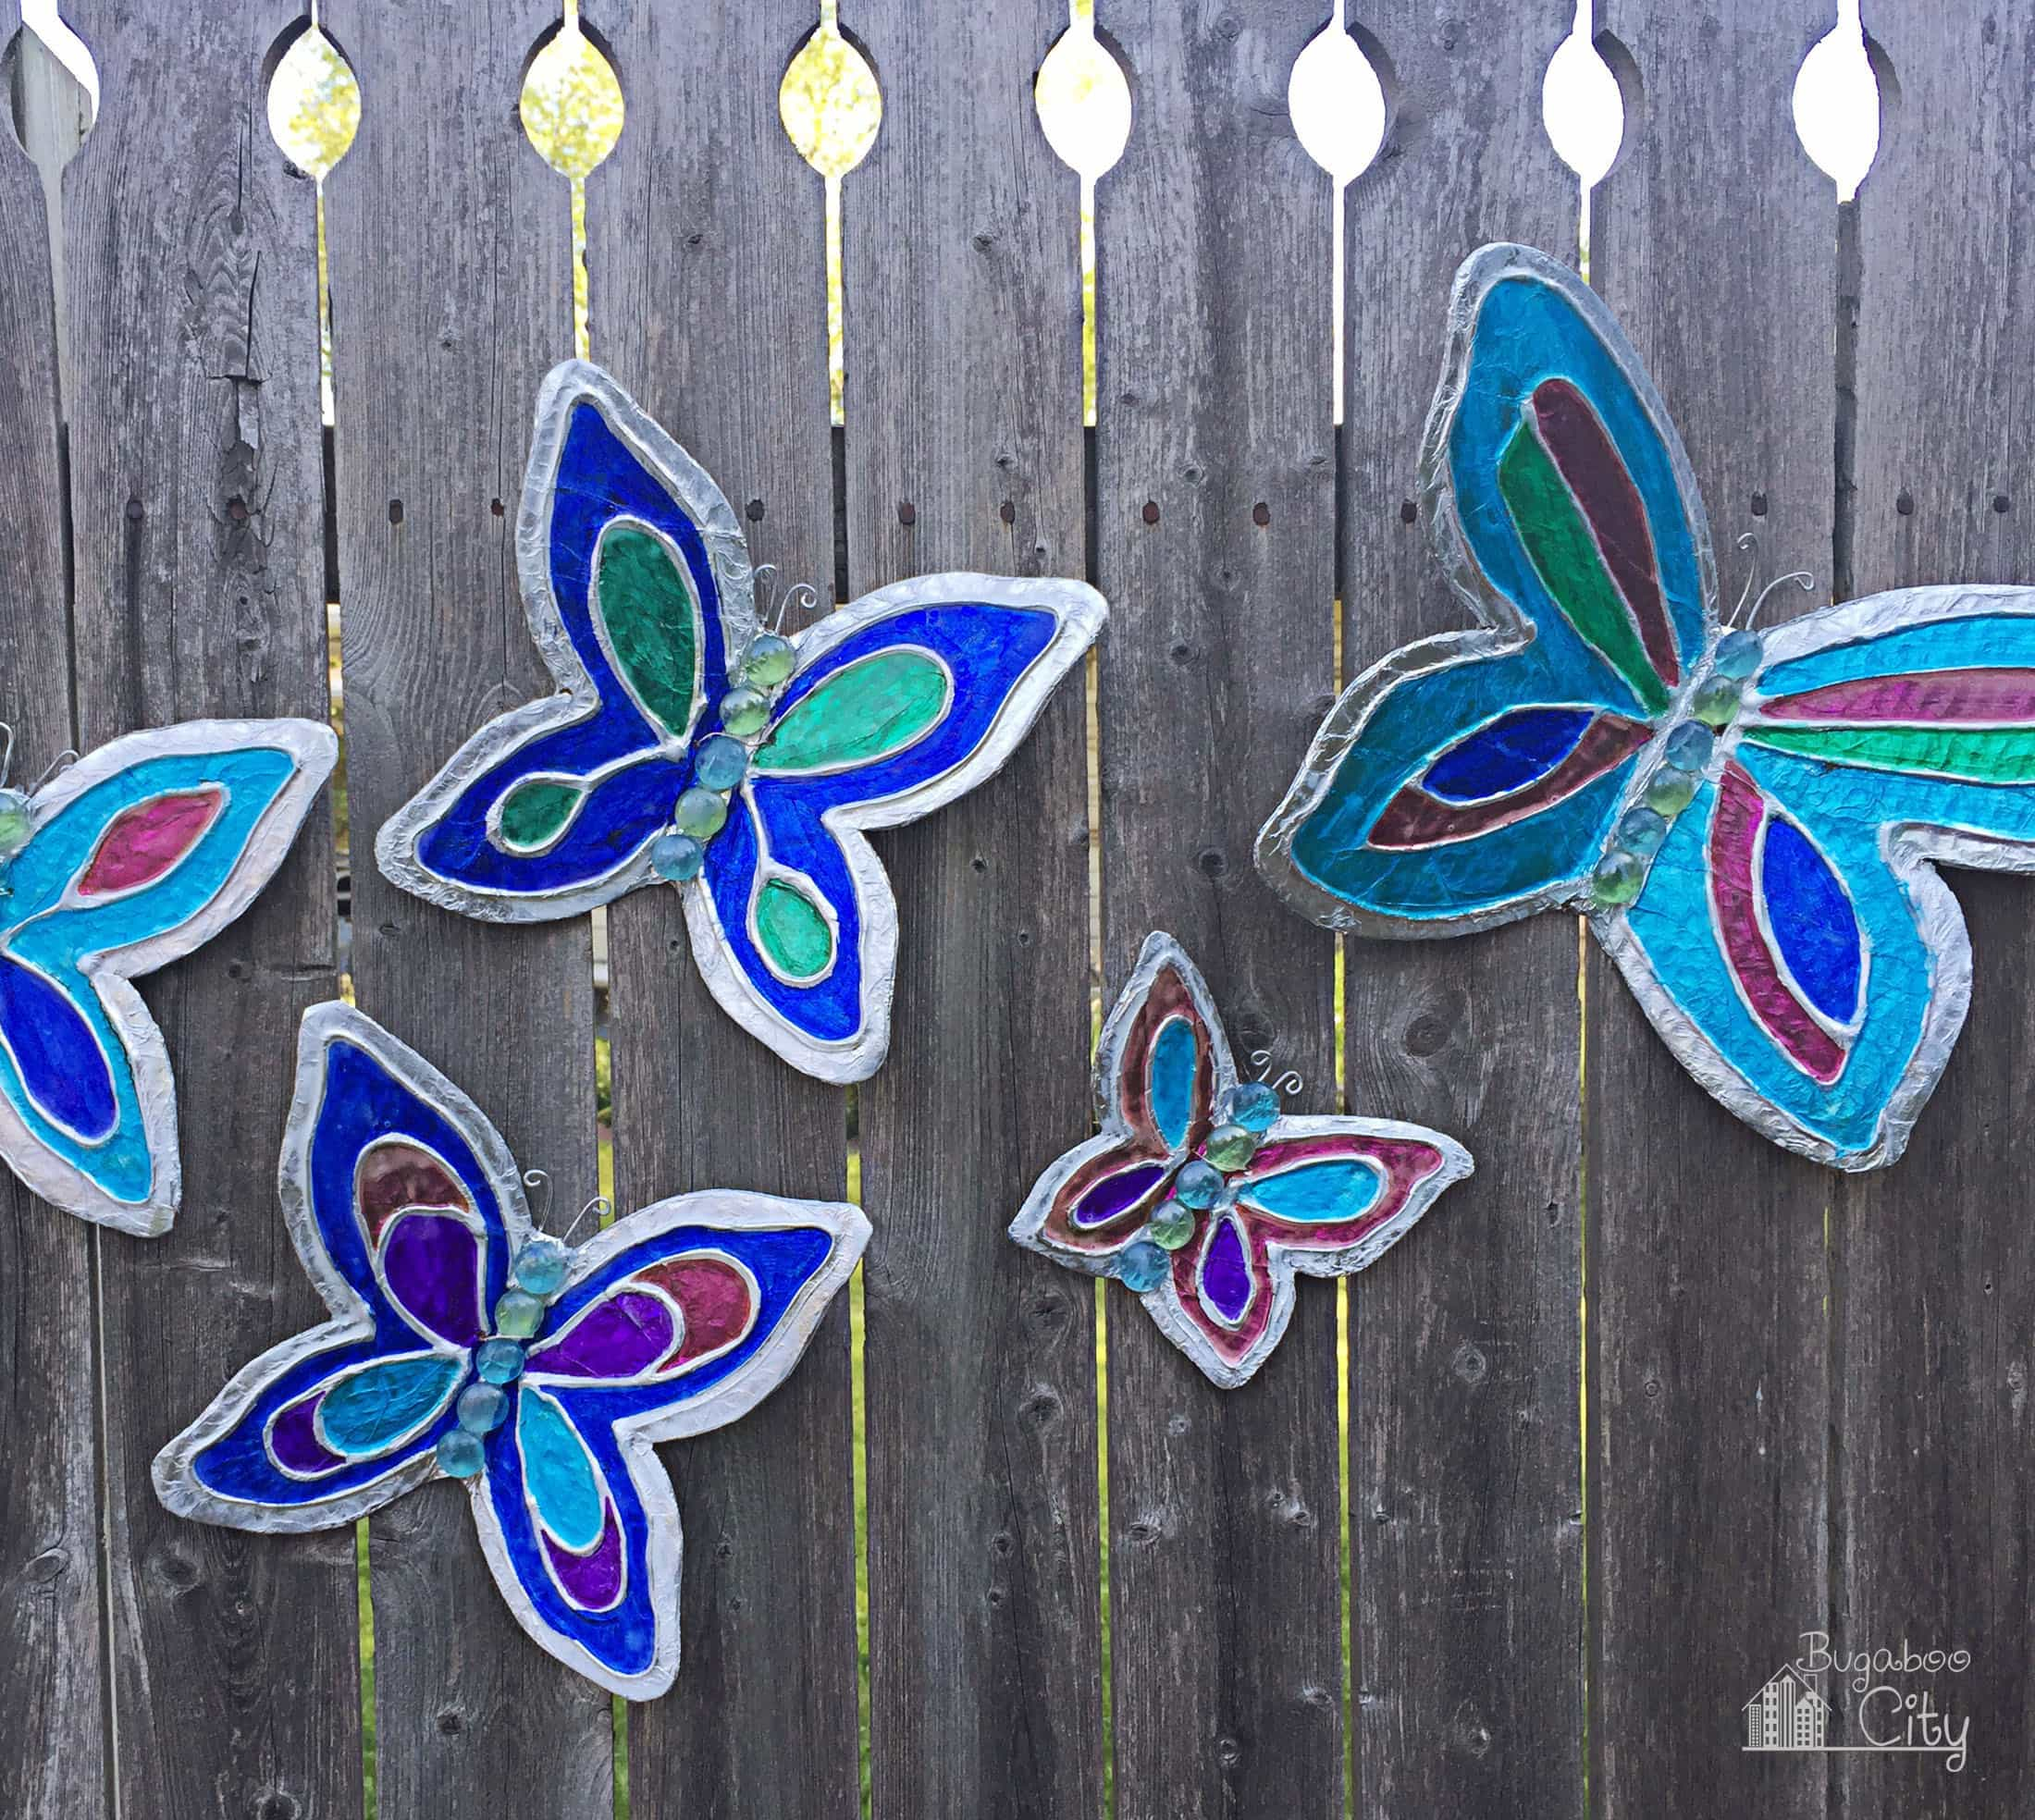 Colorful butterflies made from cardboard and tin foil on a wooden fence.